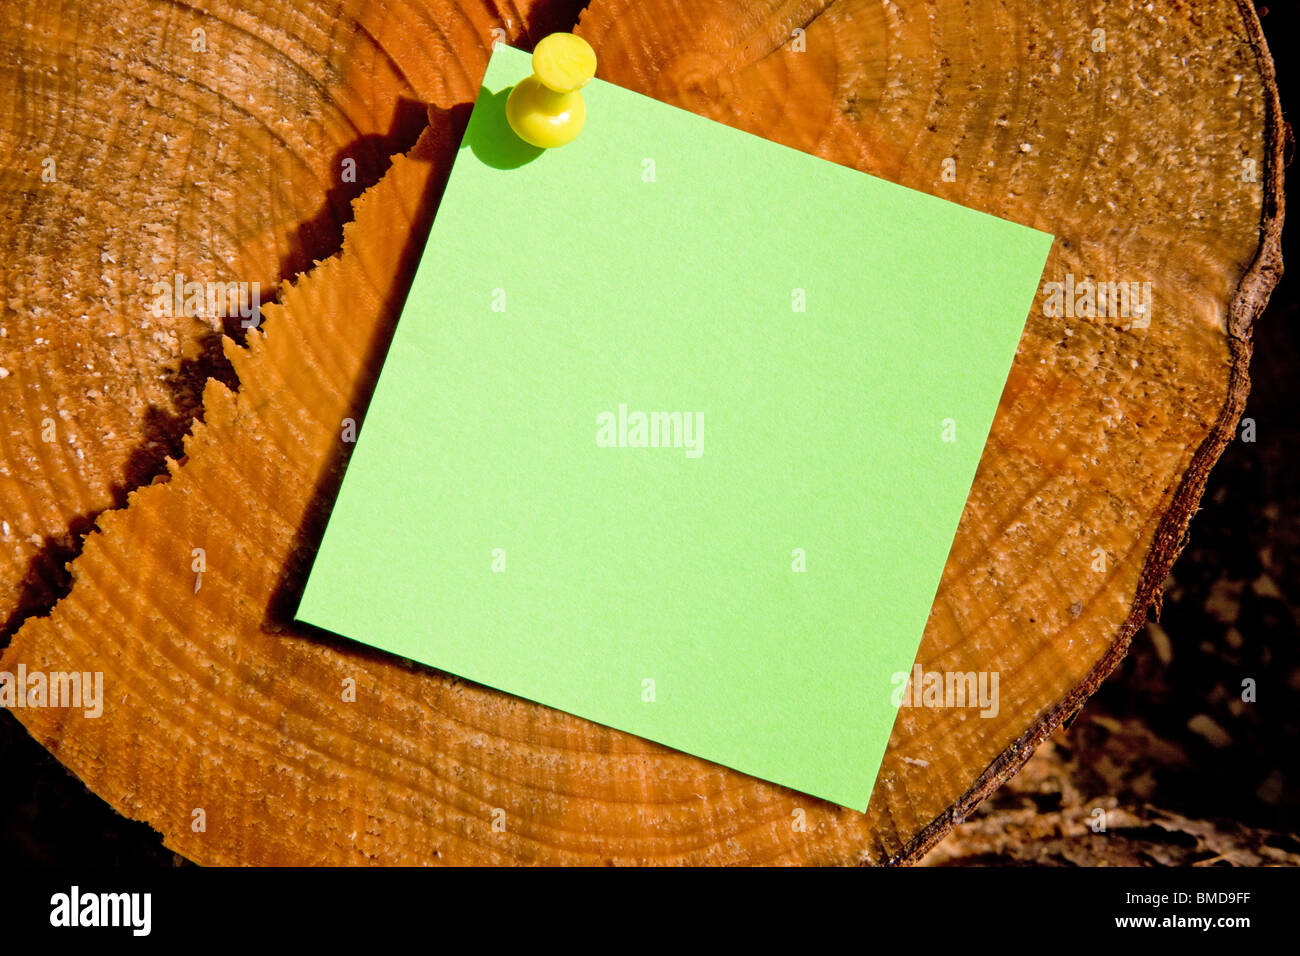 A post-it note on a tree trunk with leaf shadows - Stock Image